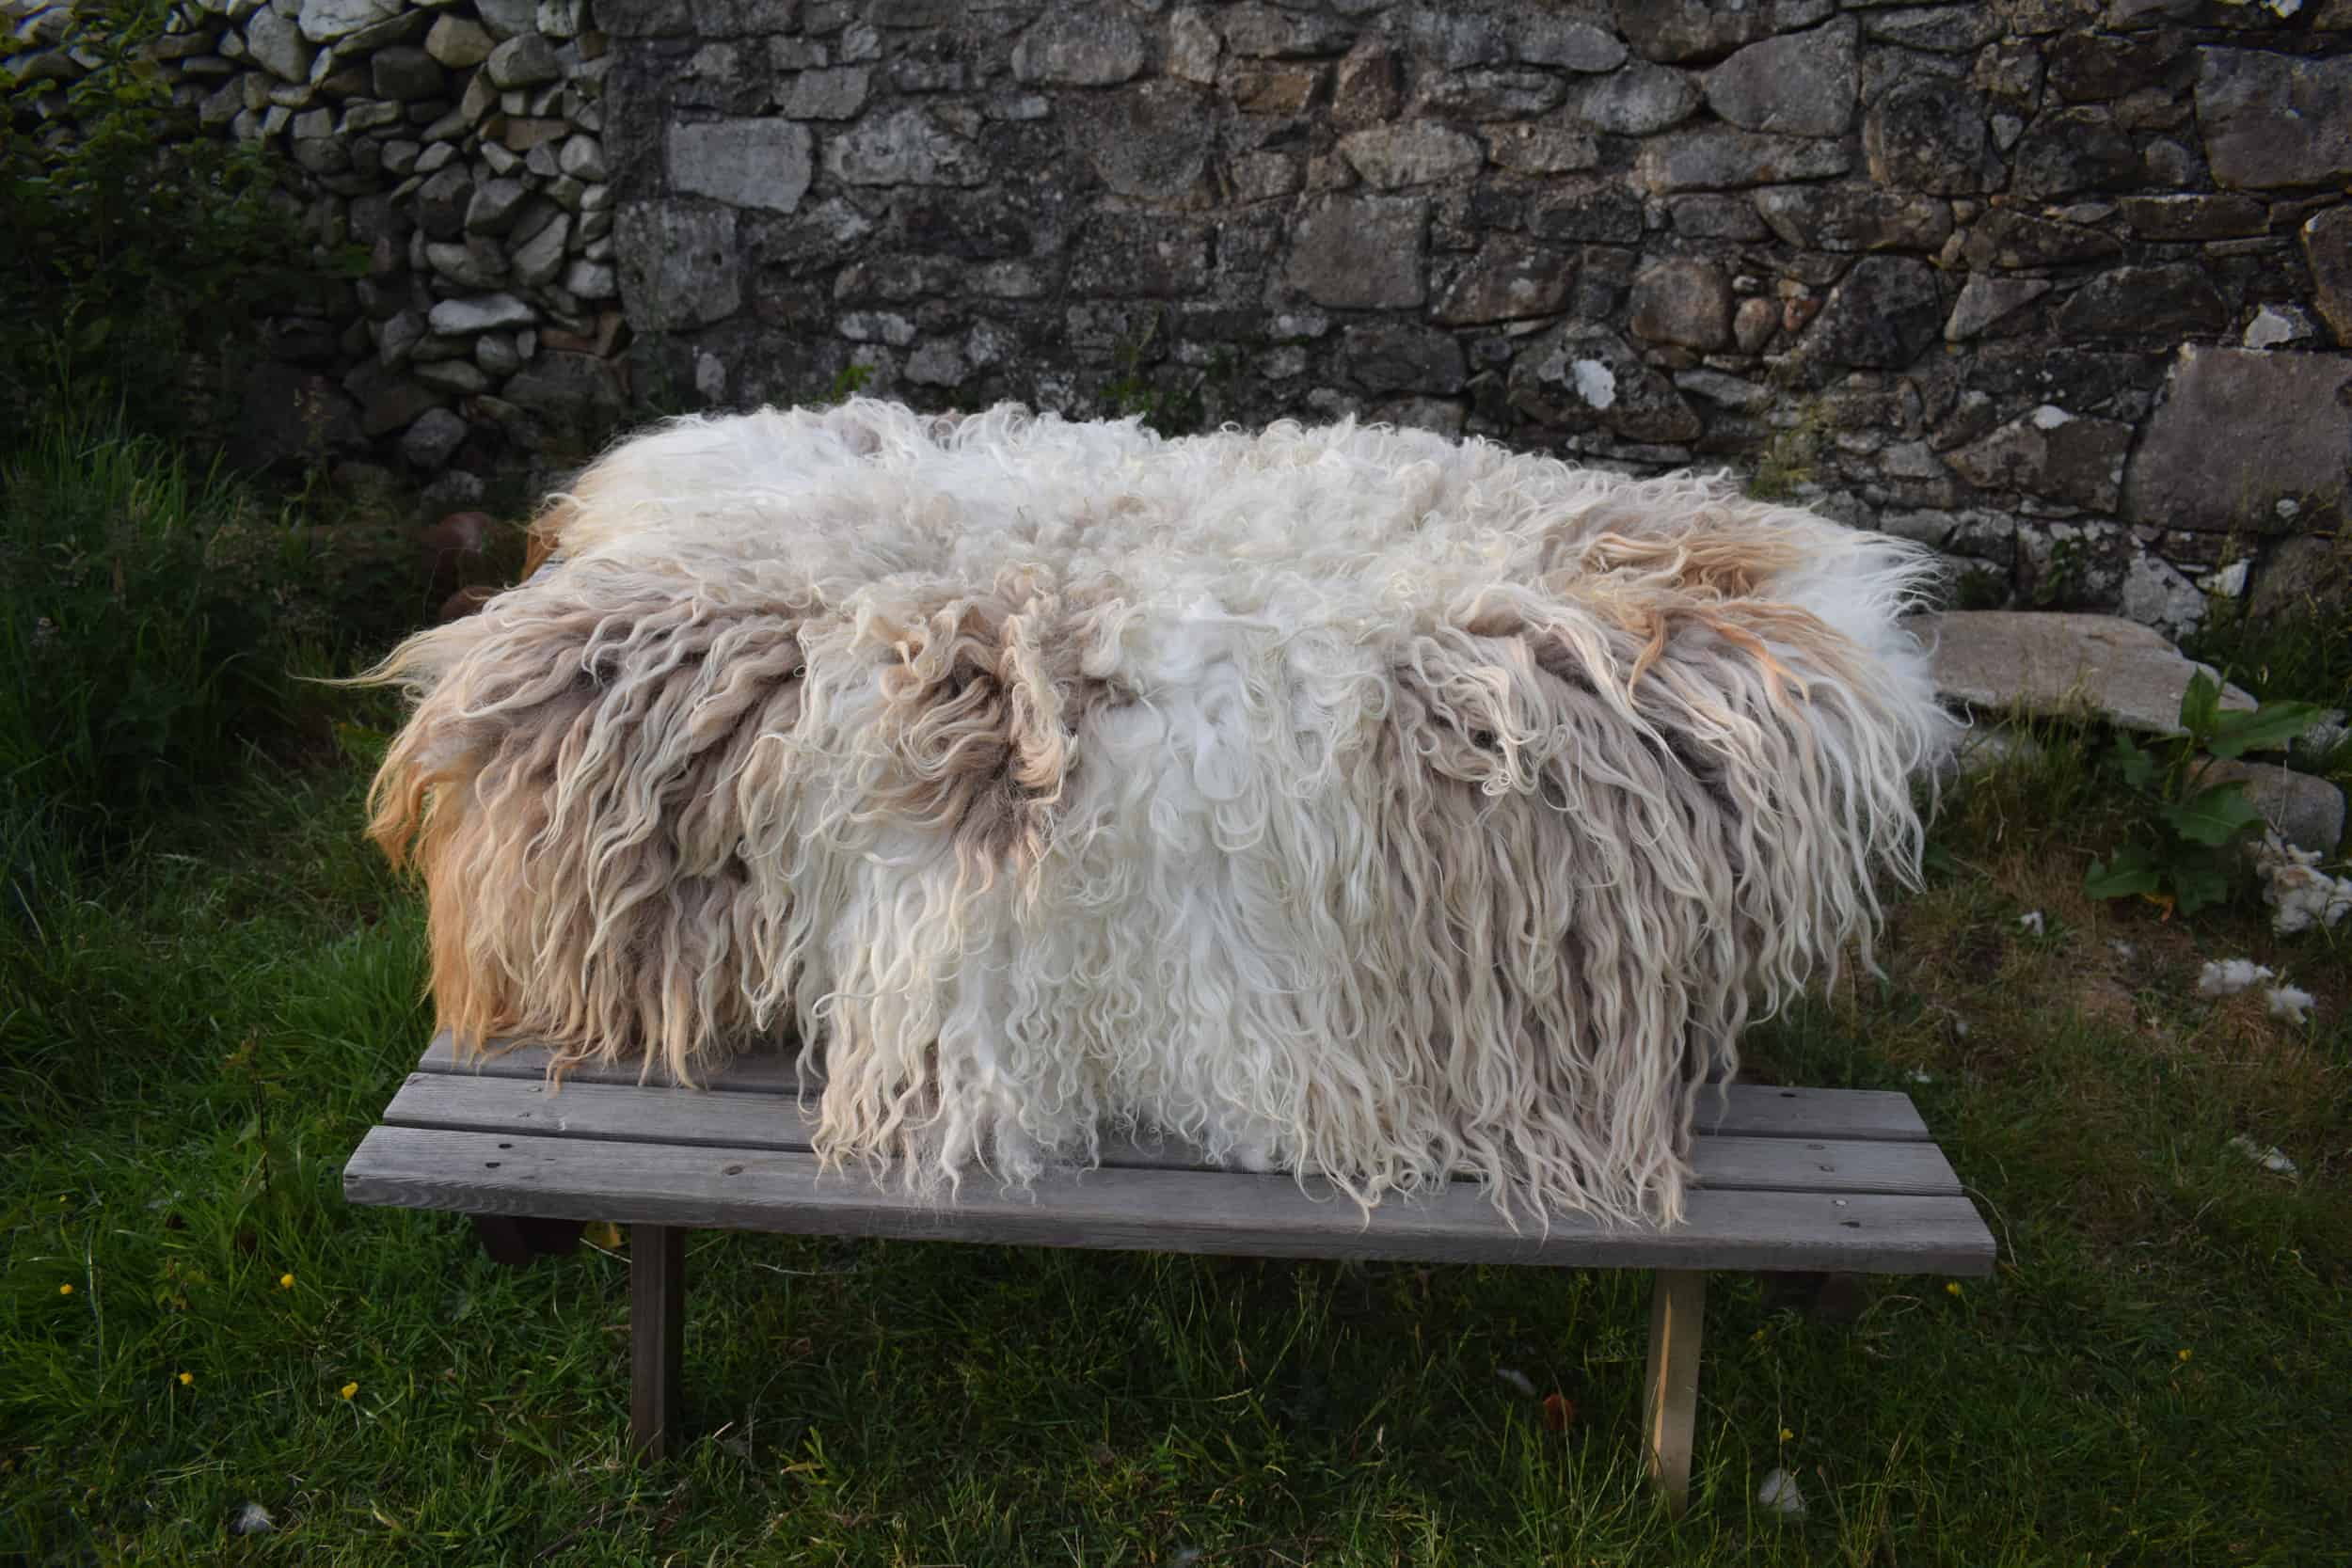 Felted fleece rug vegetarian sheepskin dandelion living rug natural sheep friendly ethical wool sustainable throw